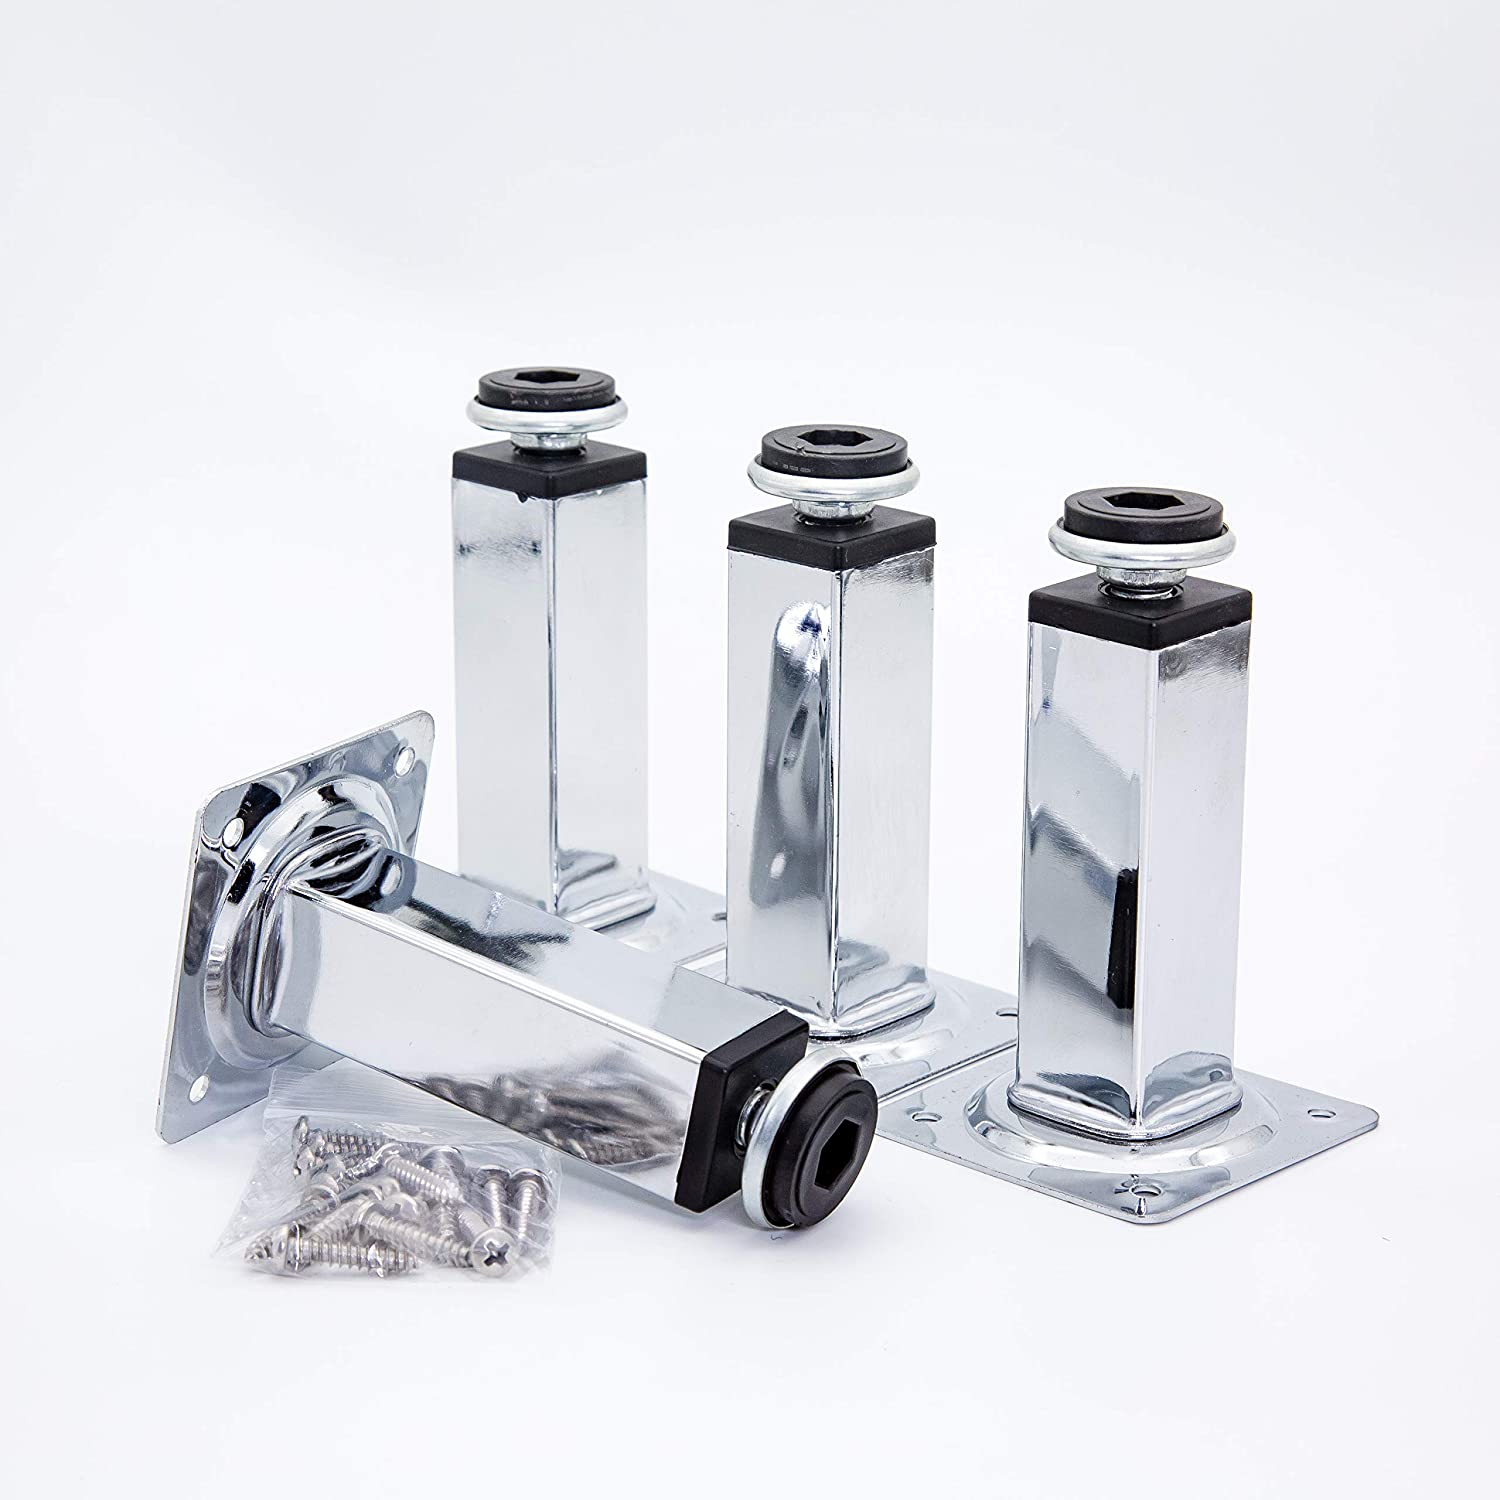 HUAYY Shiny Metal Adjustable Legs   Furniture,cabinets,Table levelers feet   Leveling Foot and Screw mounting Package (Chrome Plated)